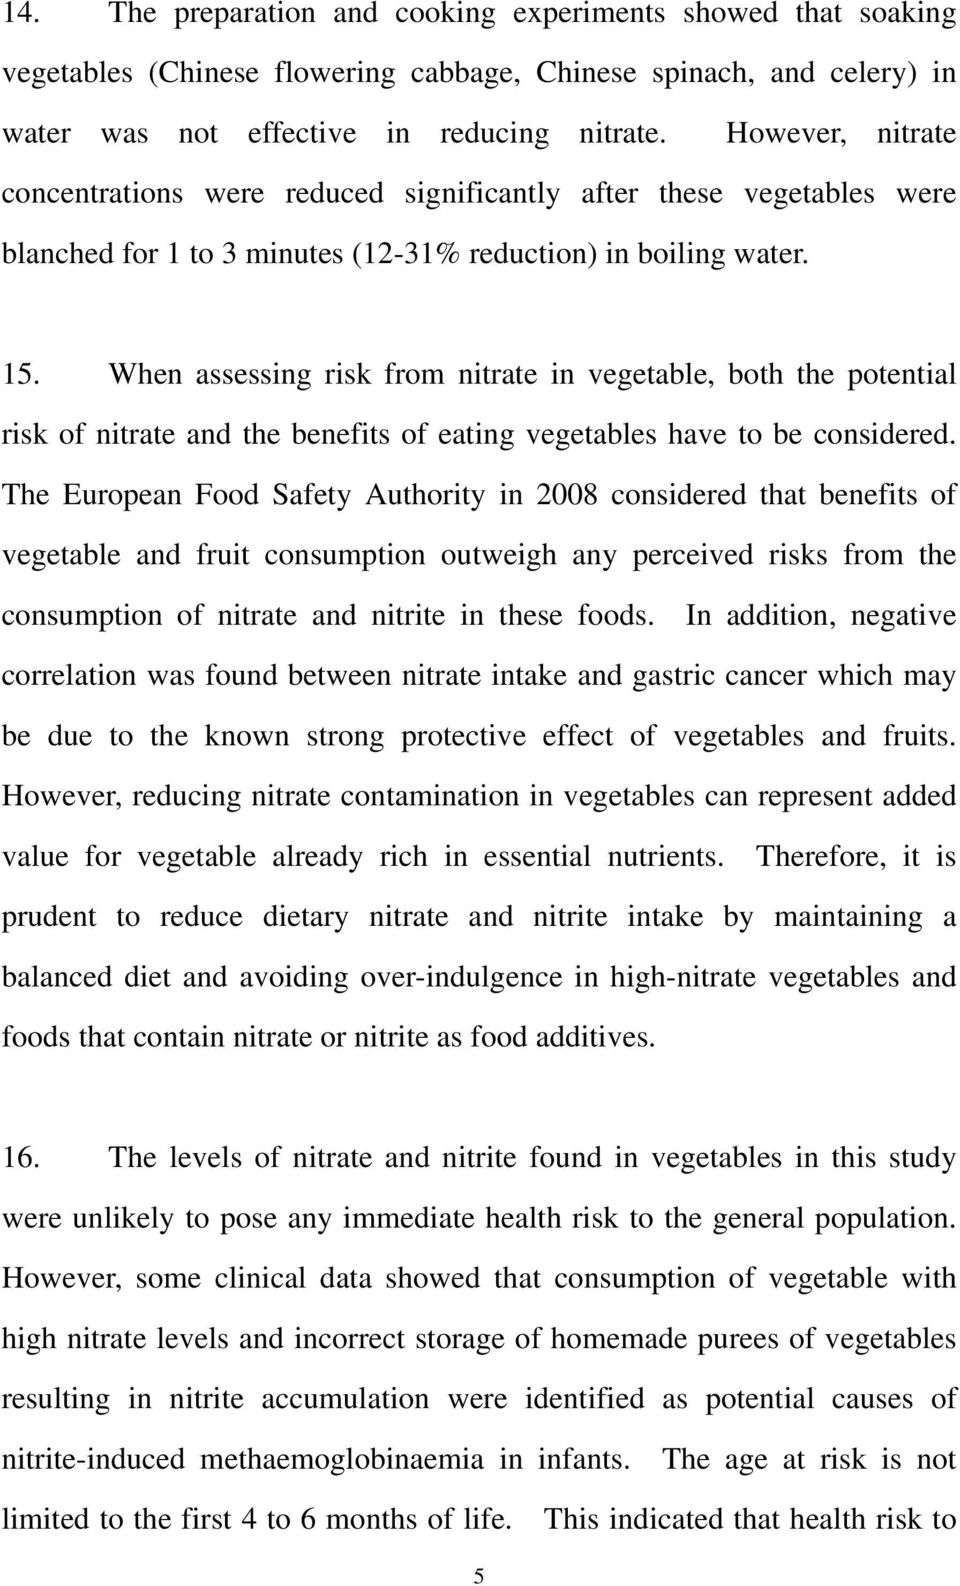 When assessing risk from nitrate in vegetable, both the potential risk of nitrate and the benefits of eating vegetables have to be considered.